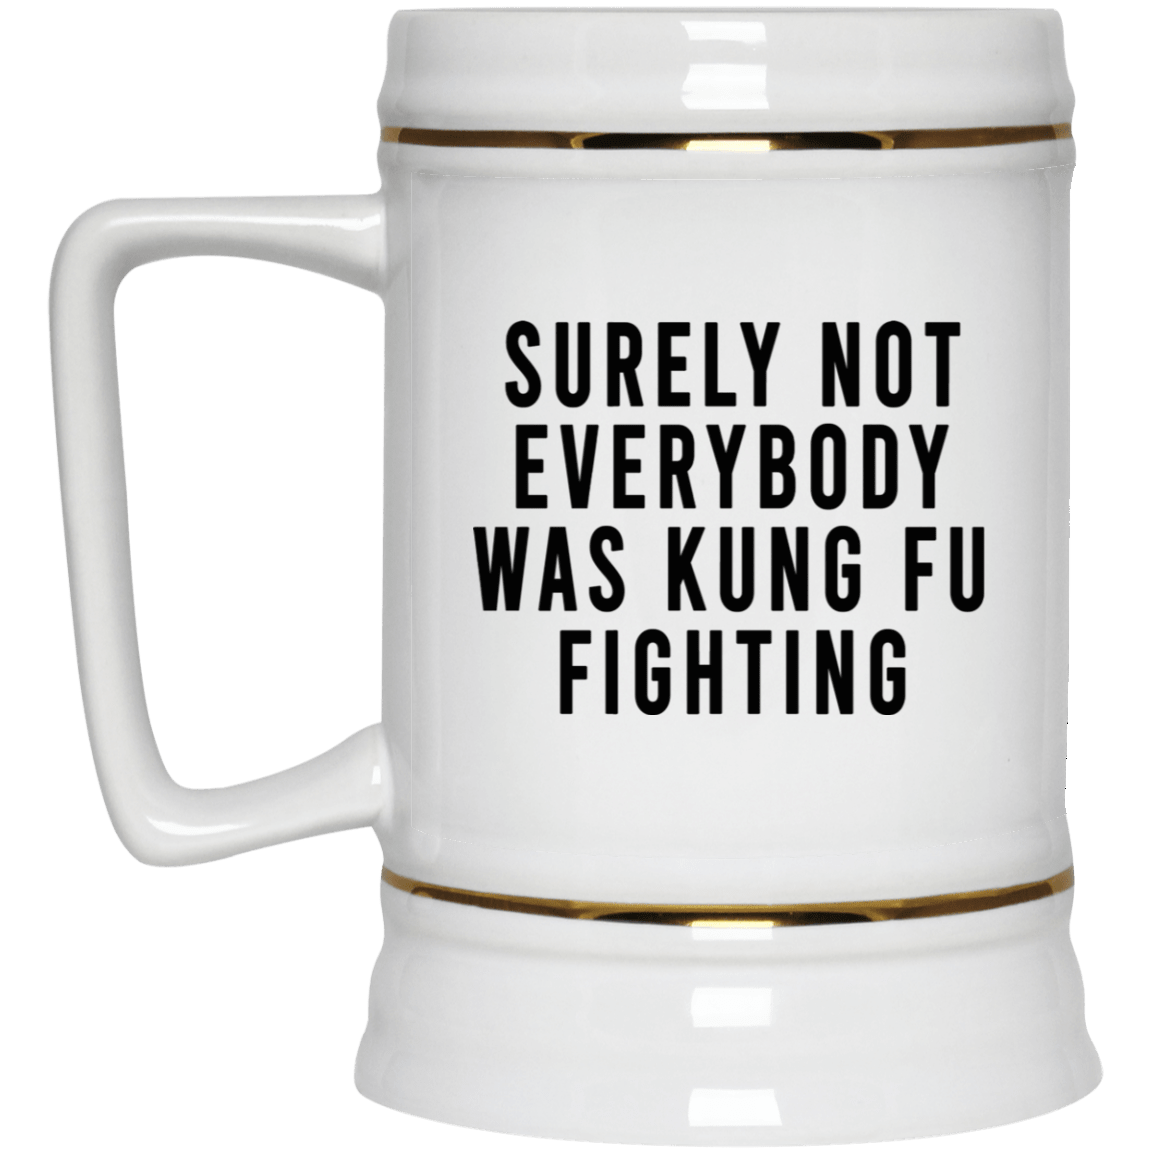 Surely Not Everybody Was Kung Fu Fighting Mug 1035-9819-88282882-47459 - Tee Ript